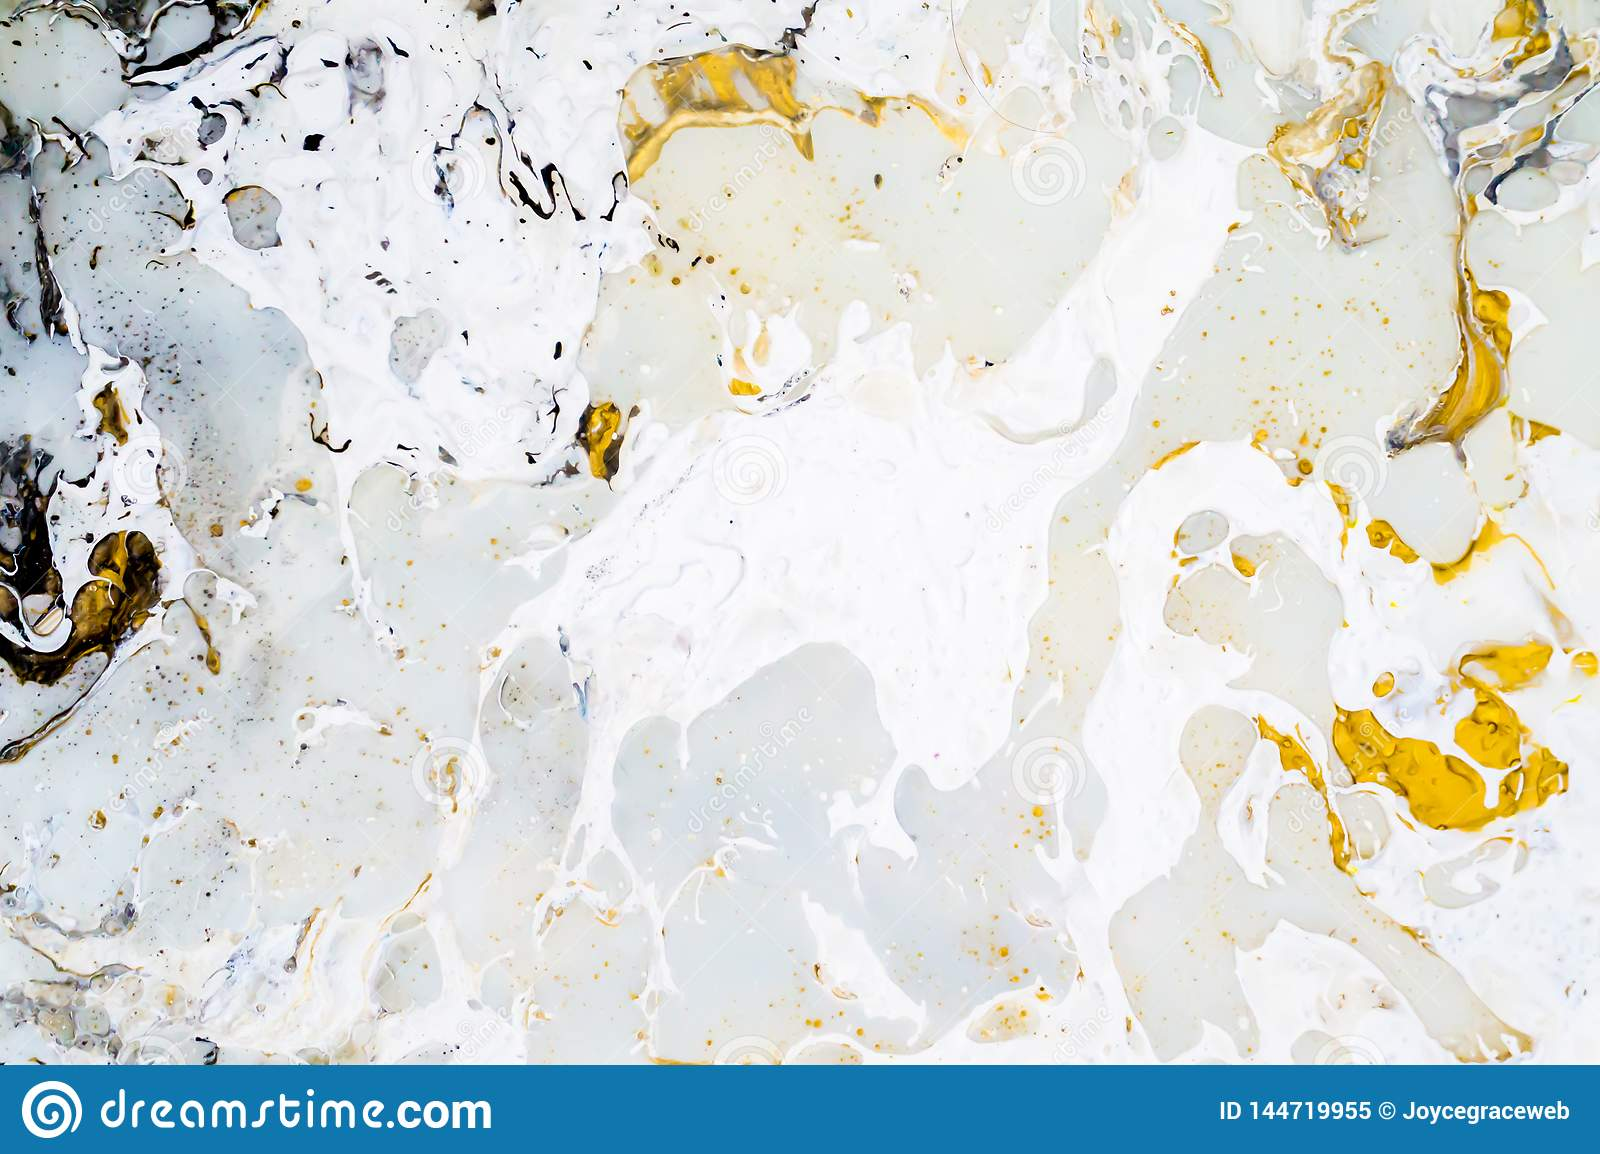 Bright marble background texture with gold, black, grey and white colors, using acrylic pouring medium art technique. Useful as a